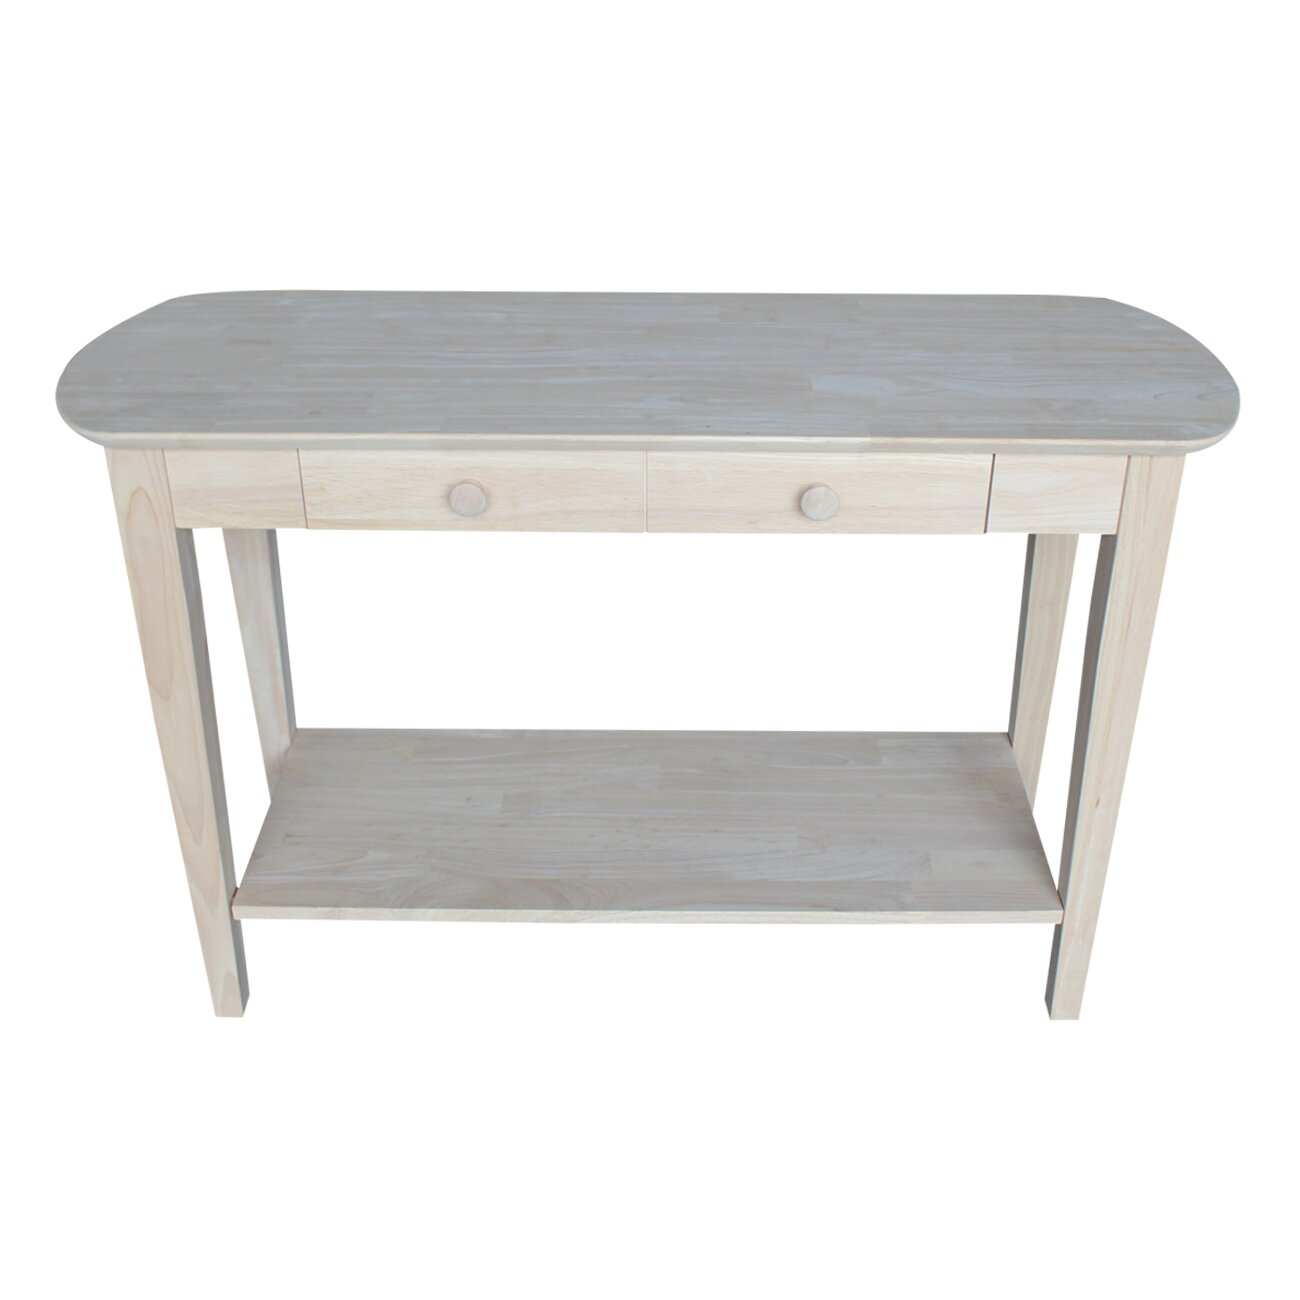 International concepts unfinished philips console table for Sofa table unfinished